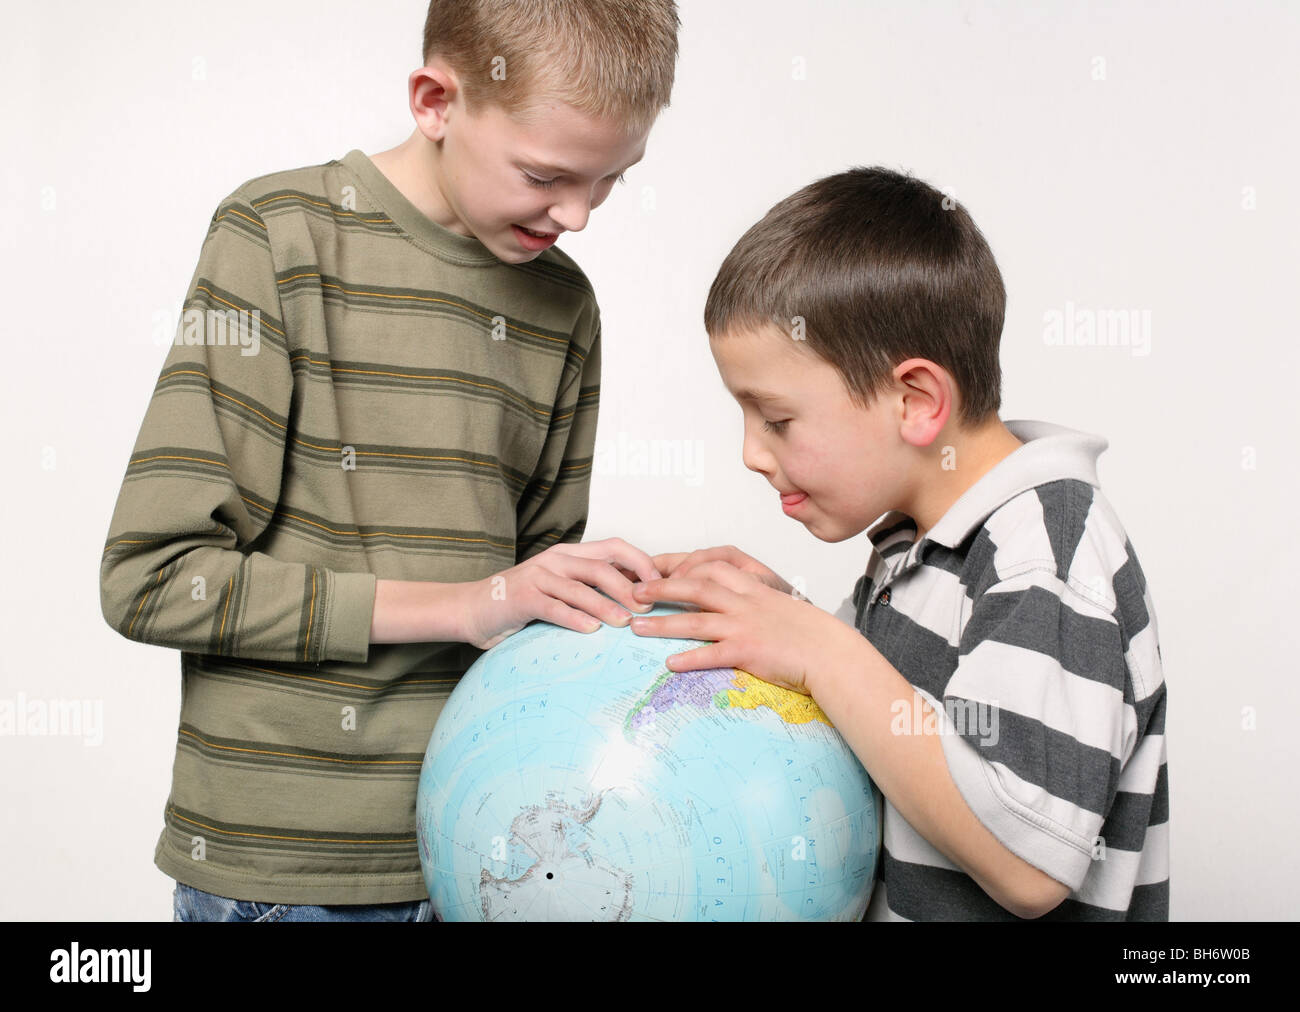 two elementary school age boys looking closely at a world globe on white background - Stock Image